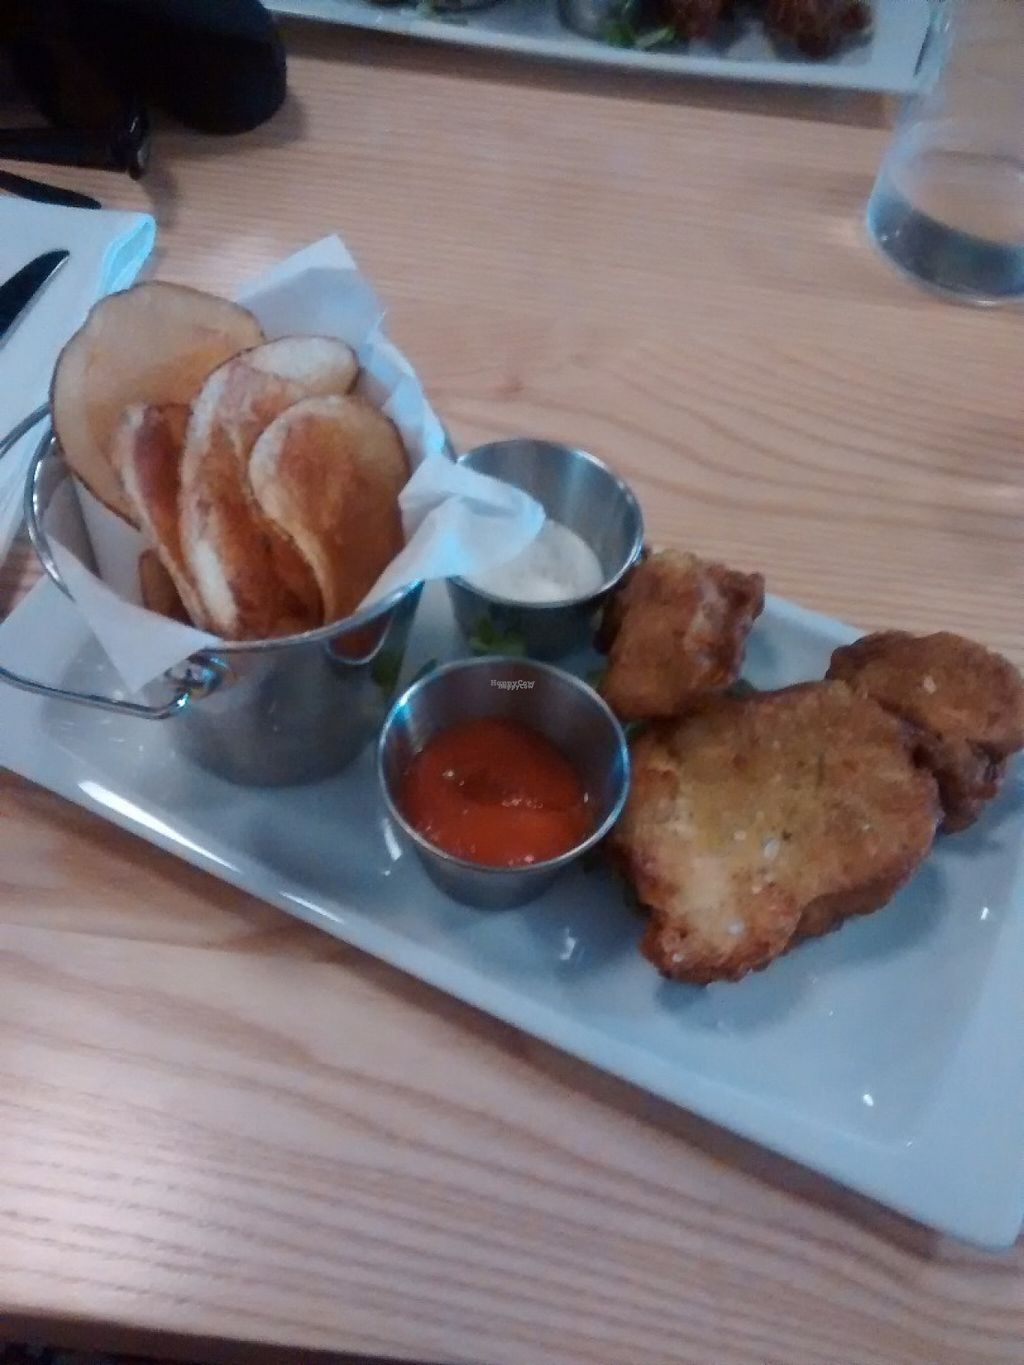 """Photo of Lincoln Street Food  by <a href=""""/members/profile/QuothTheRaven"""">QuothTheRaven</a> <br/>Vegan fish and chips  <br/> August 6, 2016  - <a href='/contact/abuse/image/75443/166309'>Report</a>"""